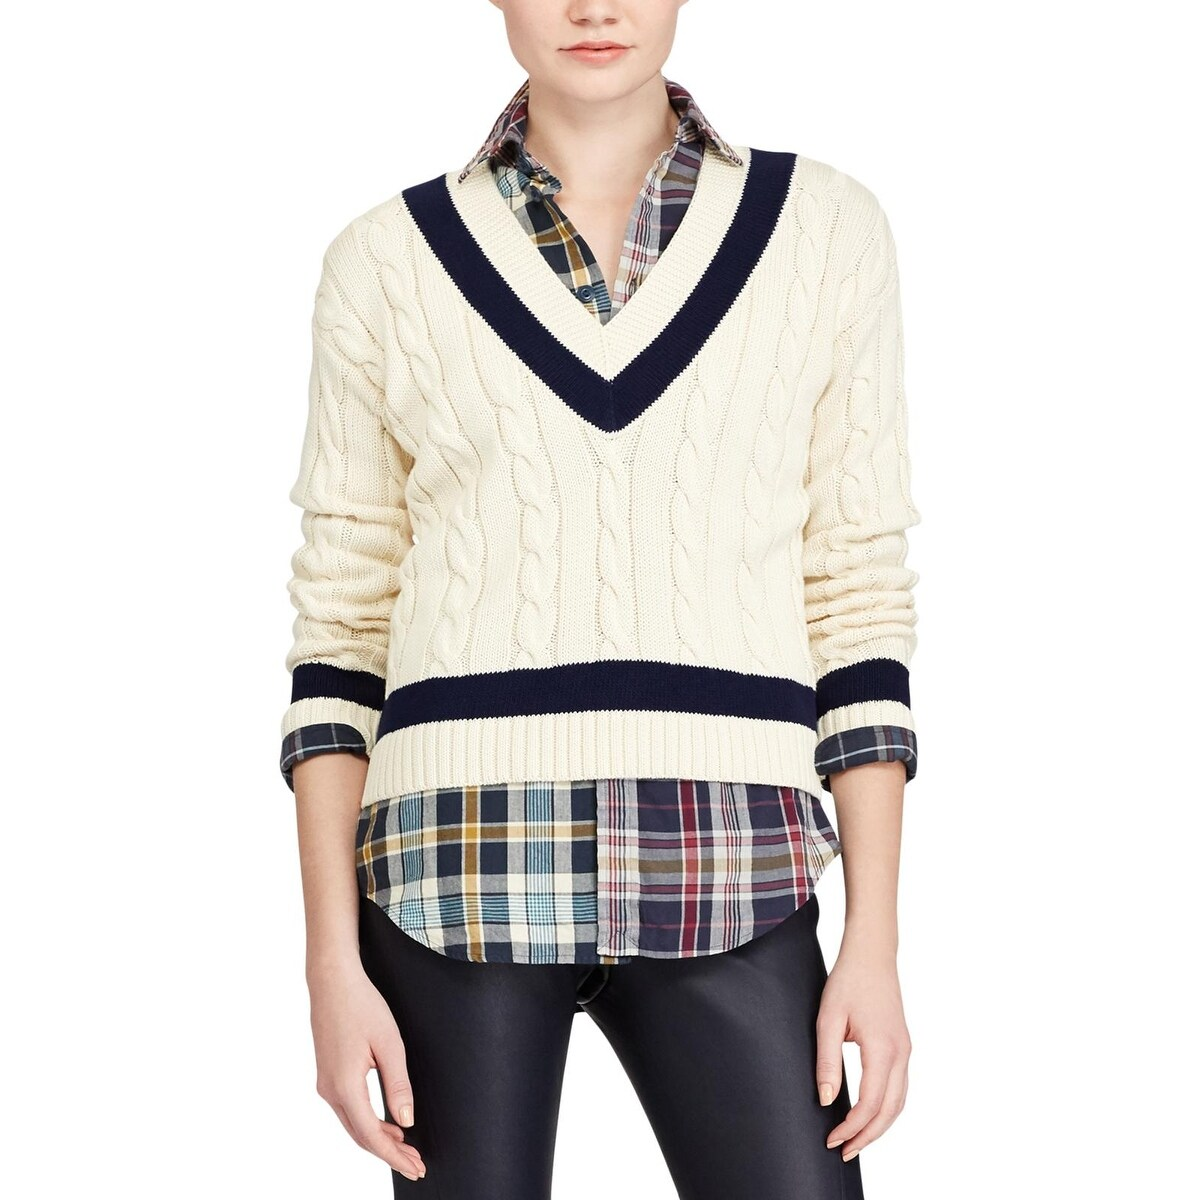 a644f3f99a06 Shop Polo Ralph Lauren Womens V-Neck Sweater Winter Cable Knit - xL ...